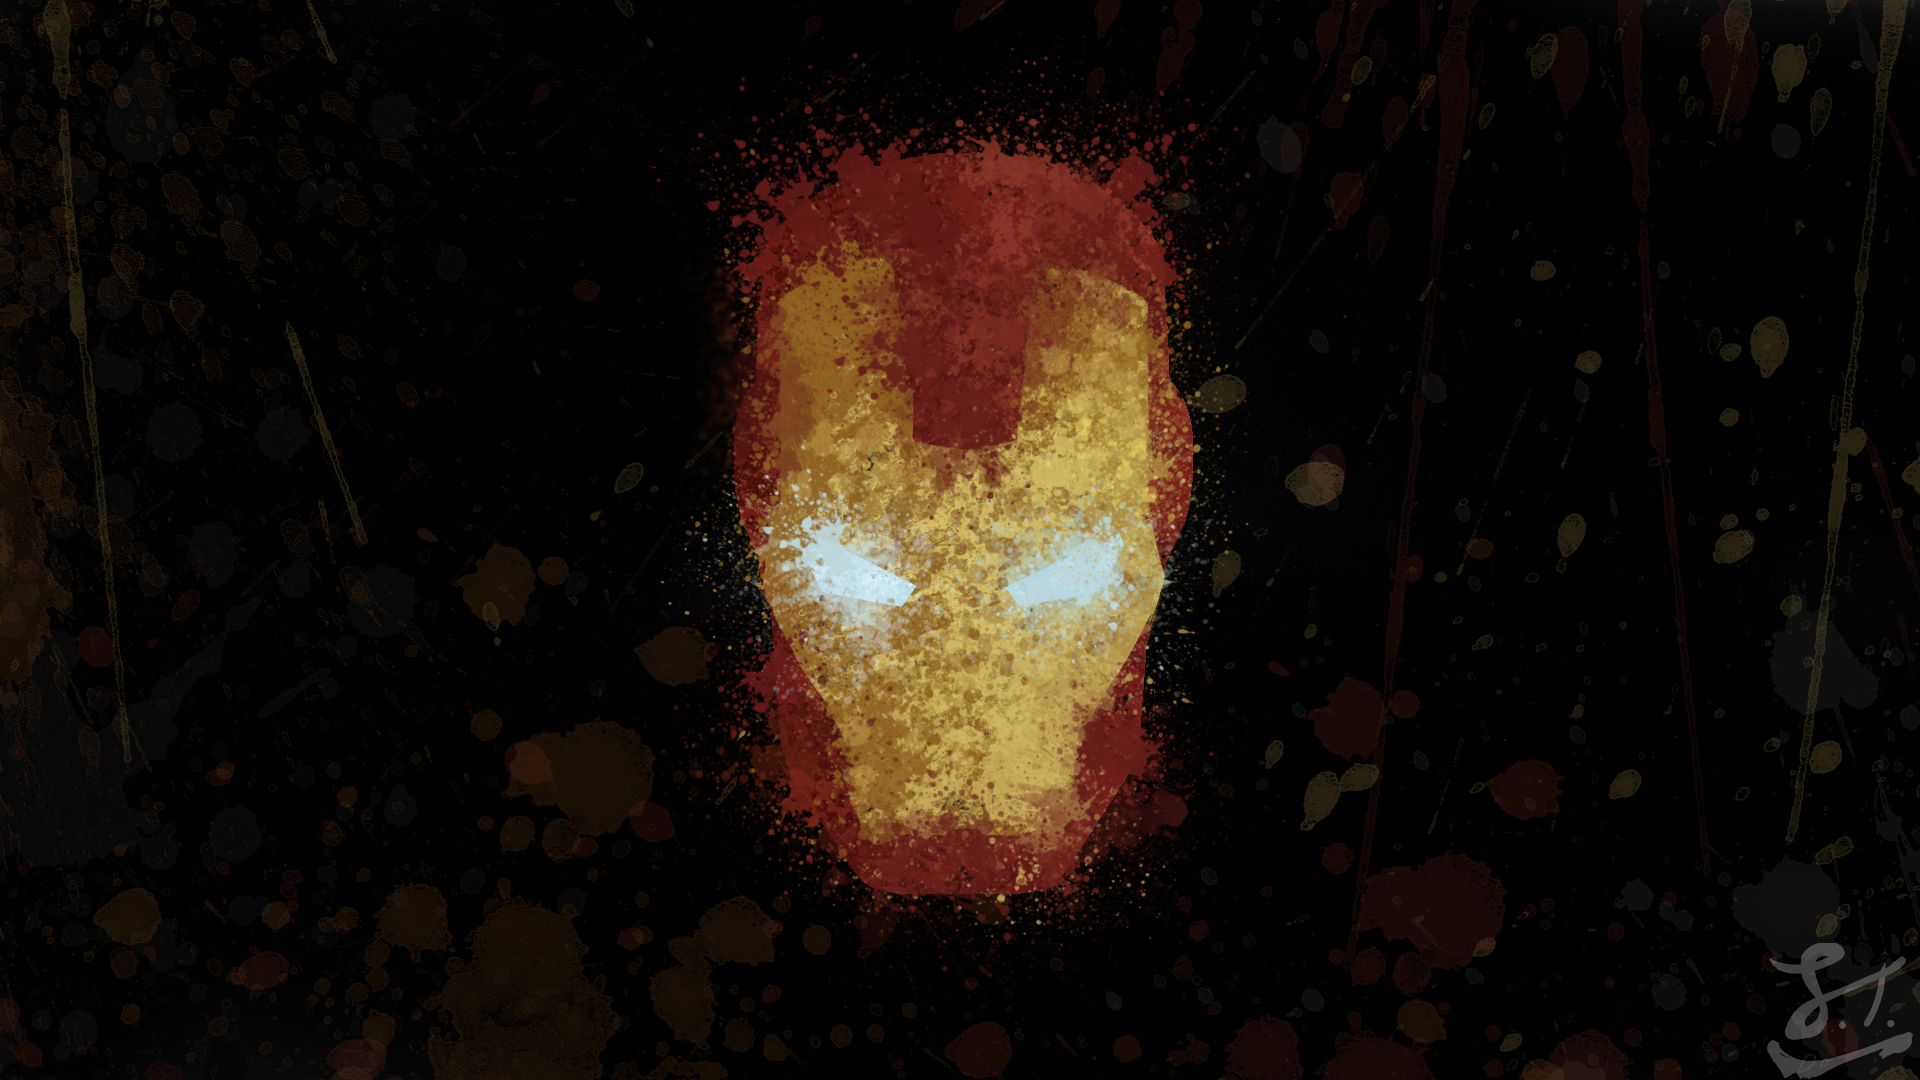 35 Iron Man HD Wallpapers for Desktop - Page 3 of 3